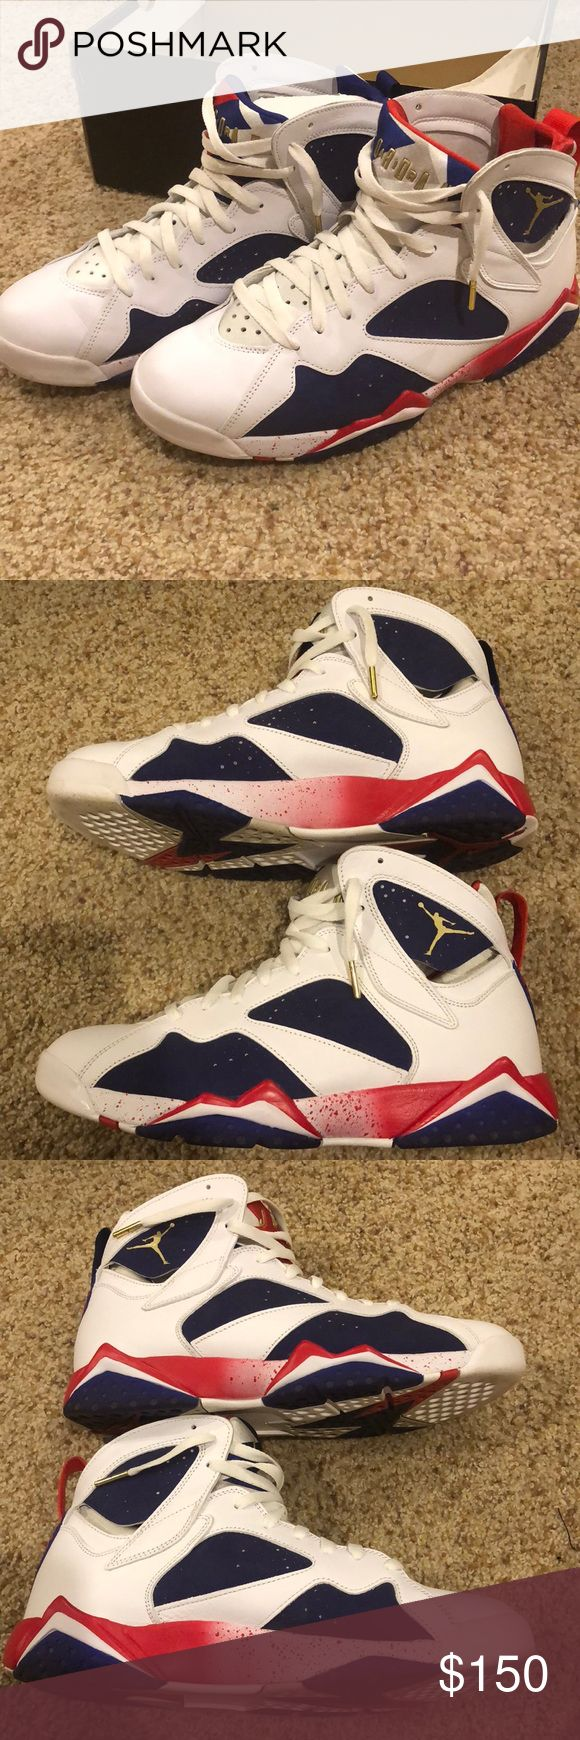 """Jordan 7 """"Olympic"""" Worn 1 Time. Size 10.5. Comes with original box. Great shoe... Feel free to make an offer! Jordan Shoes Sneakers"""